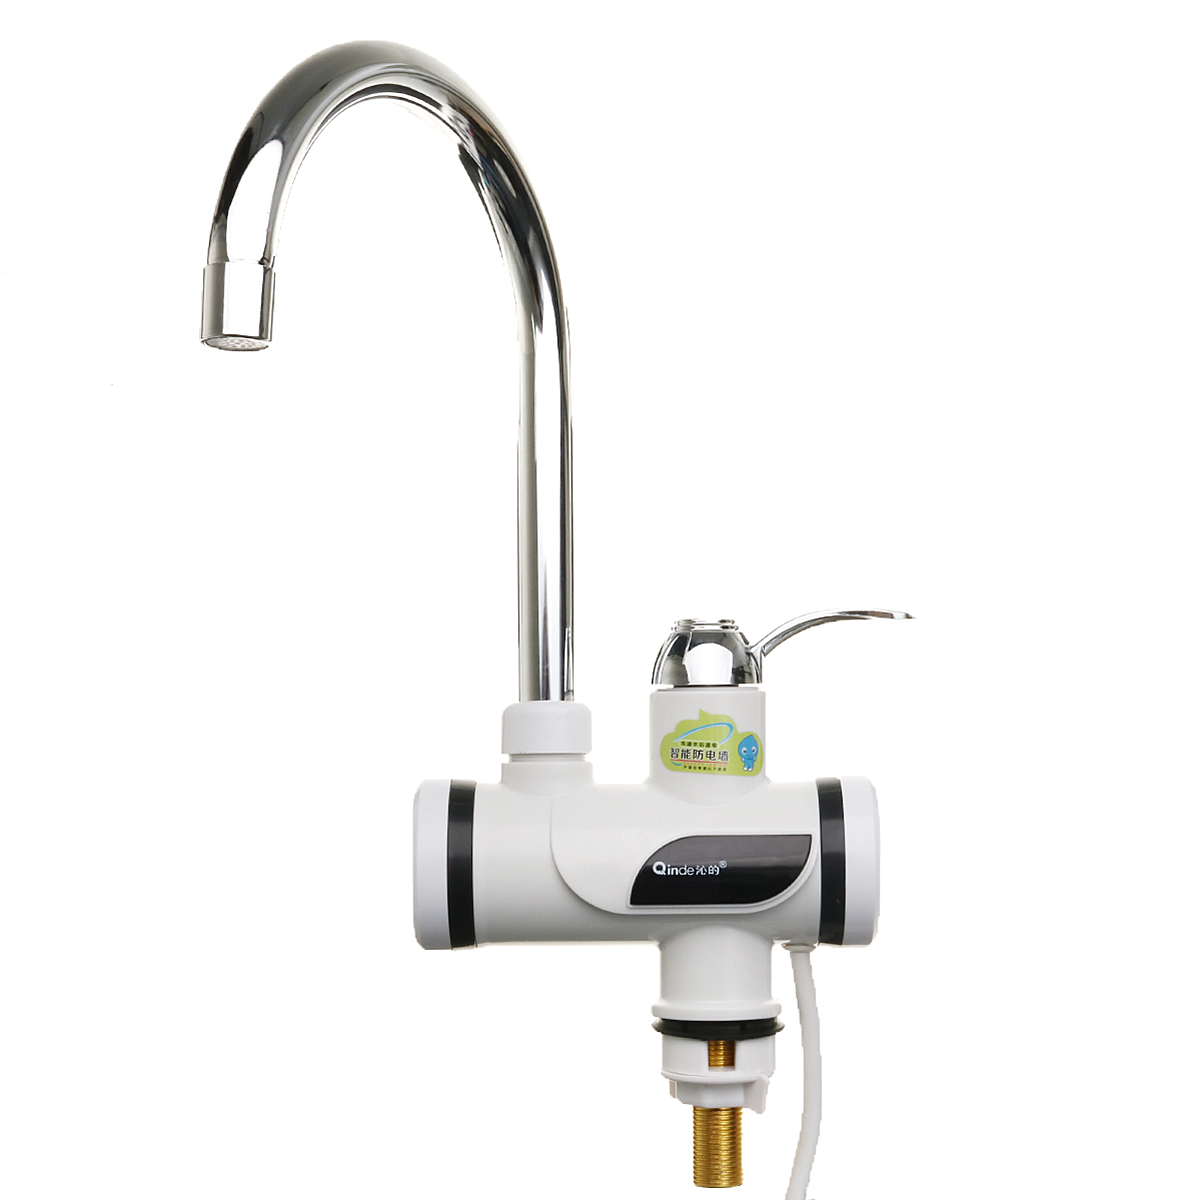 220V 3000W Instant Electric Heating Tap Electric Hot Water Faucet with Leakage Protection Plug